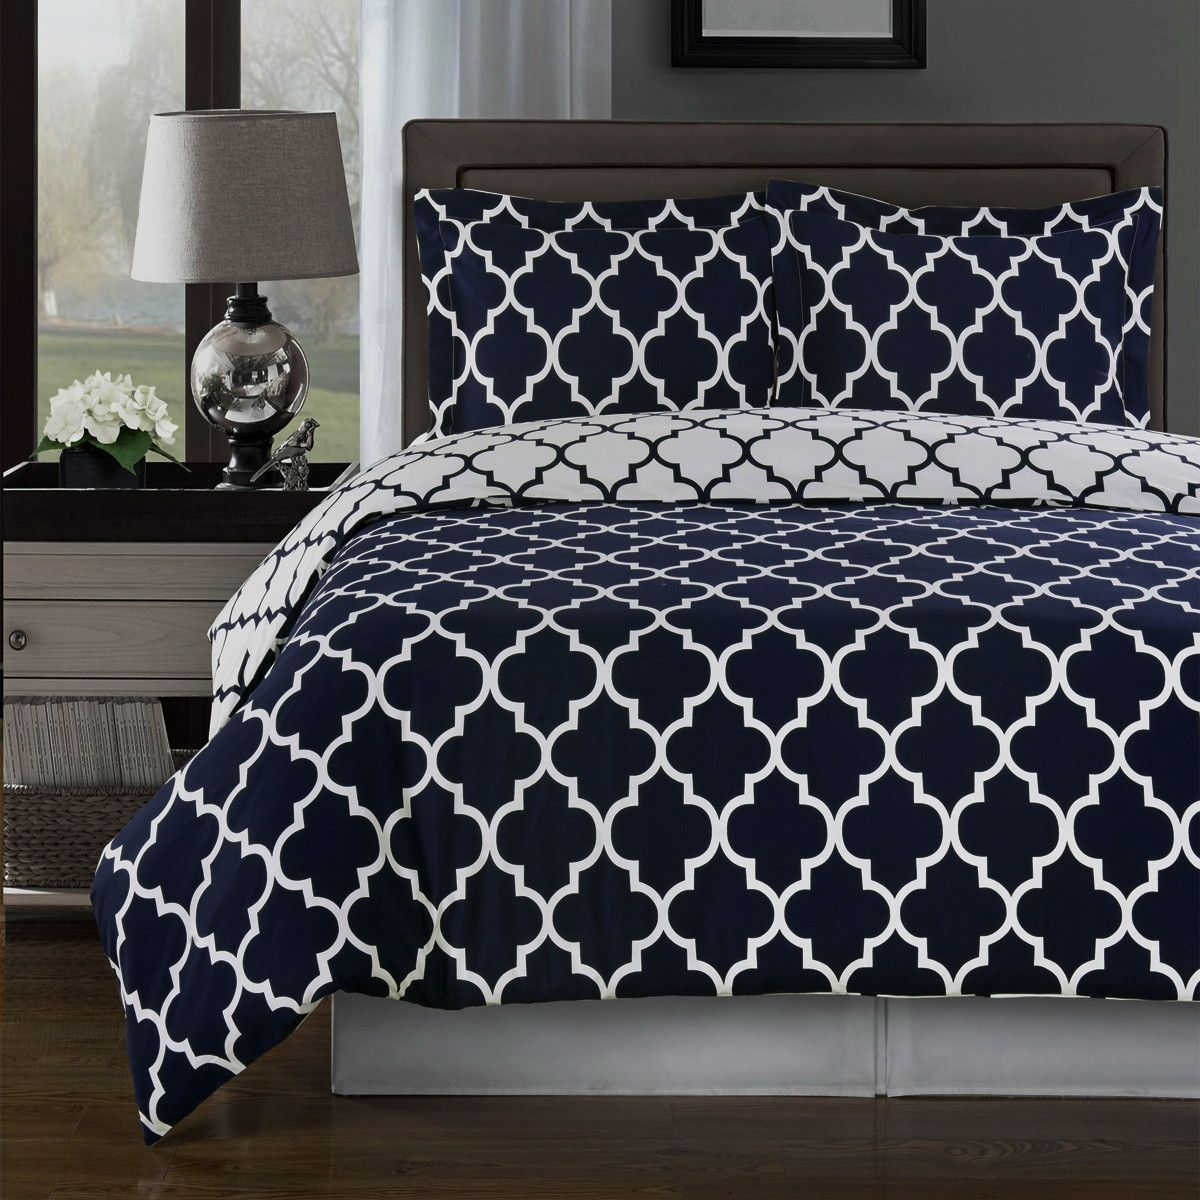 modern moroccan quatrefoil navy blue and white pc cotton duvet  - modern moroccan navy blue and white cotton duvet comforter cover and shamsset  geometric trellis